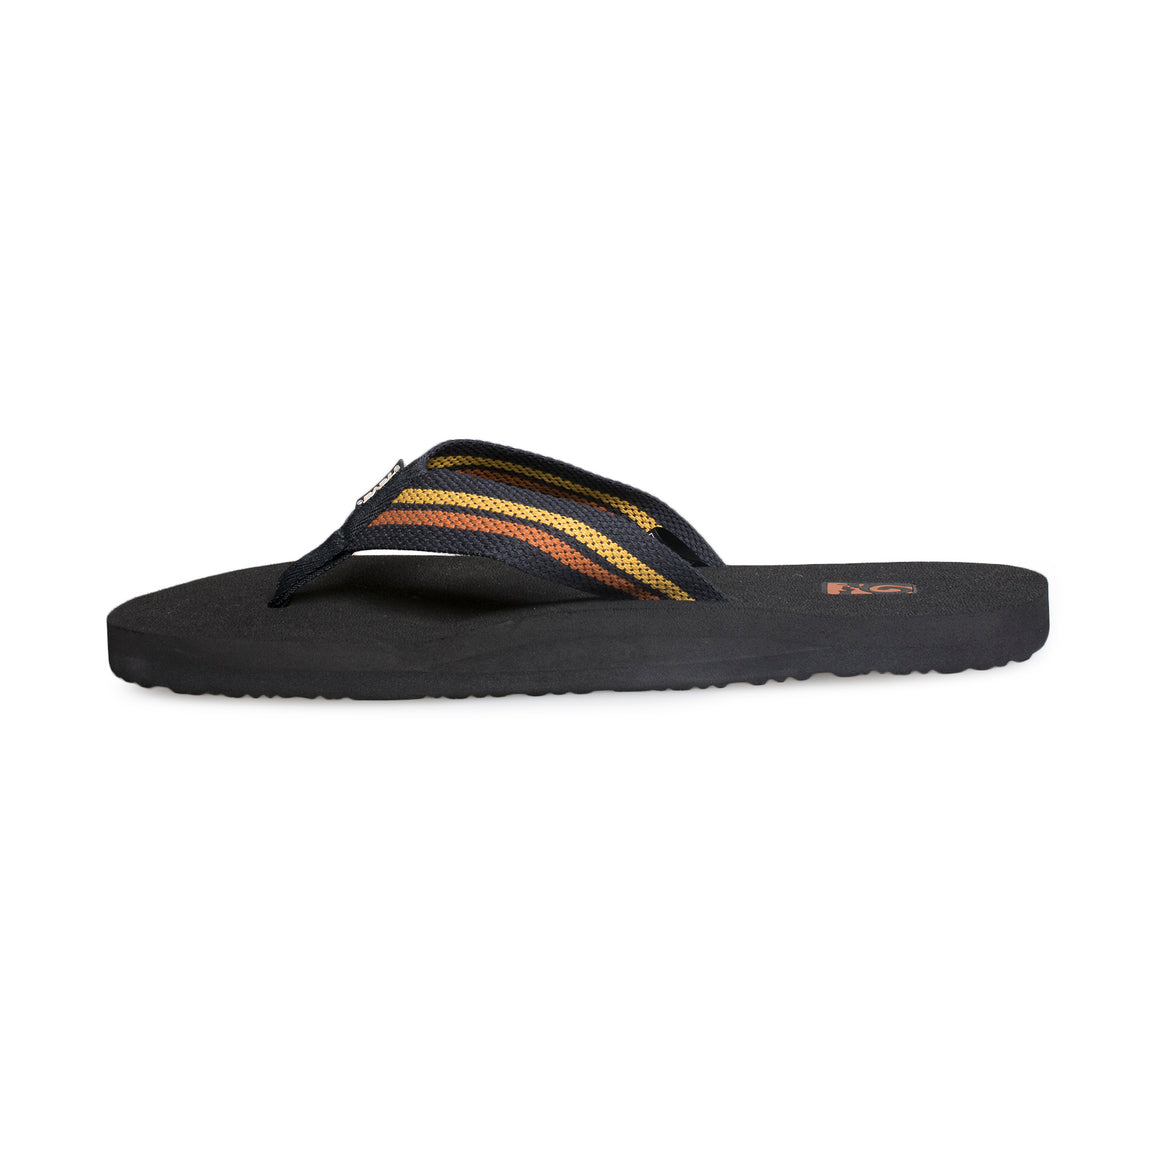 Teva Mush II Tartan Black Yellow Flip Flops - Men's